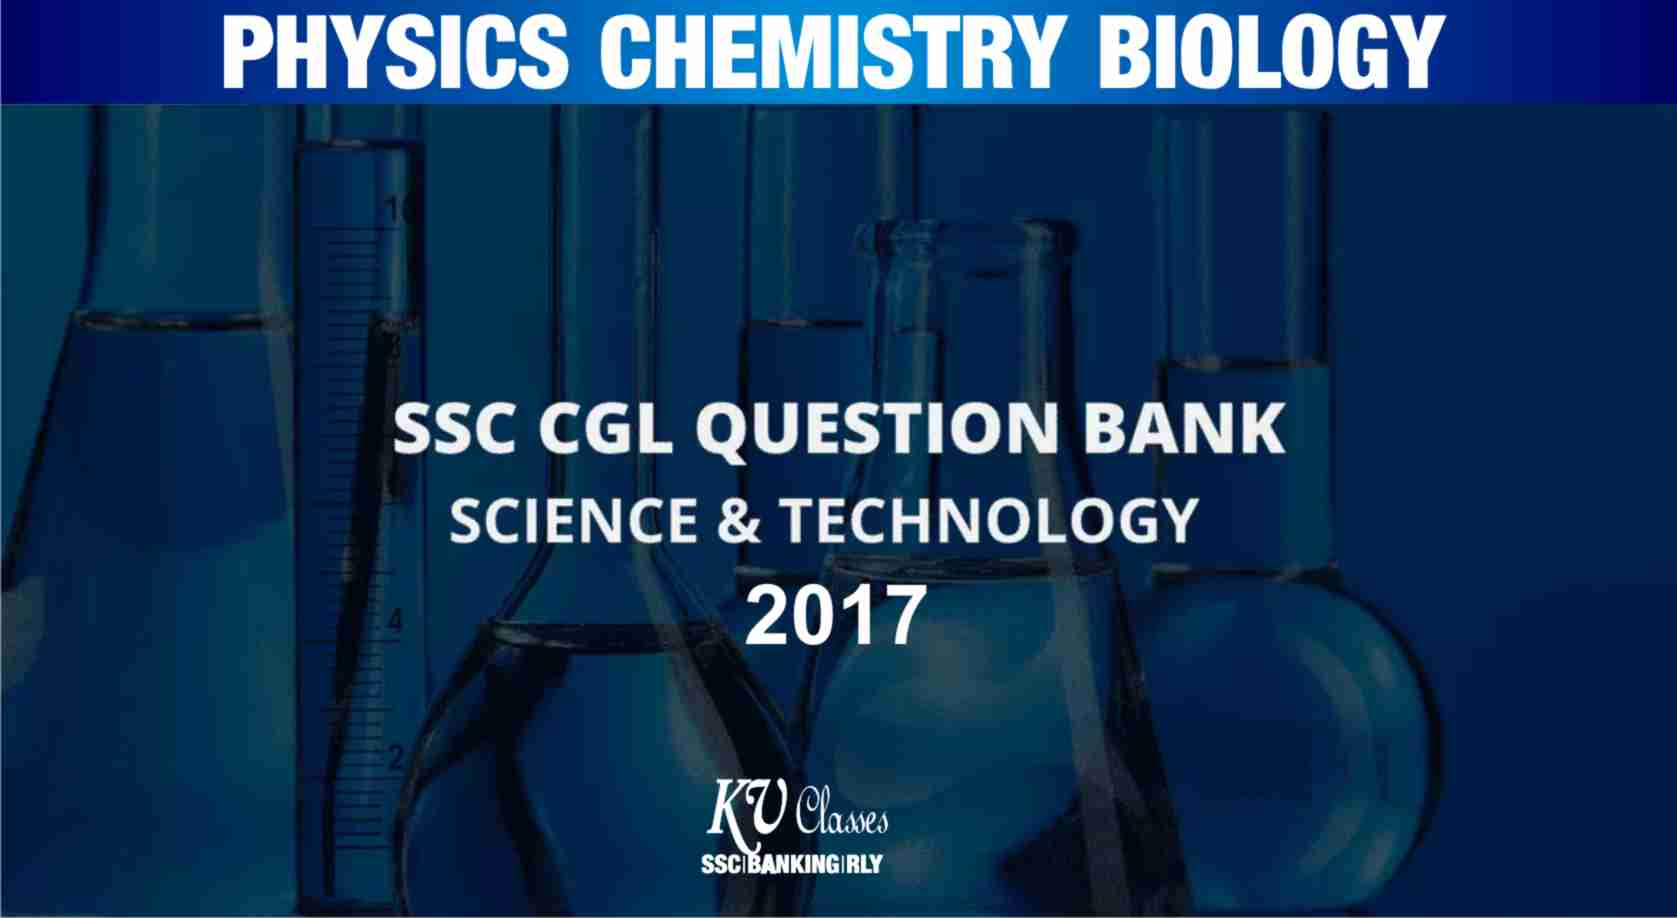 Previous Year General Science Questions of SSC CGL 2017